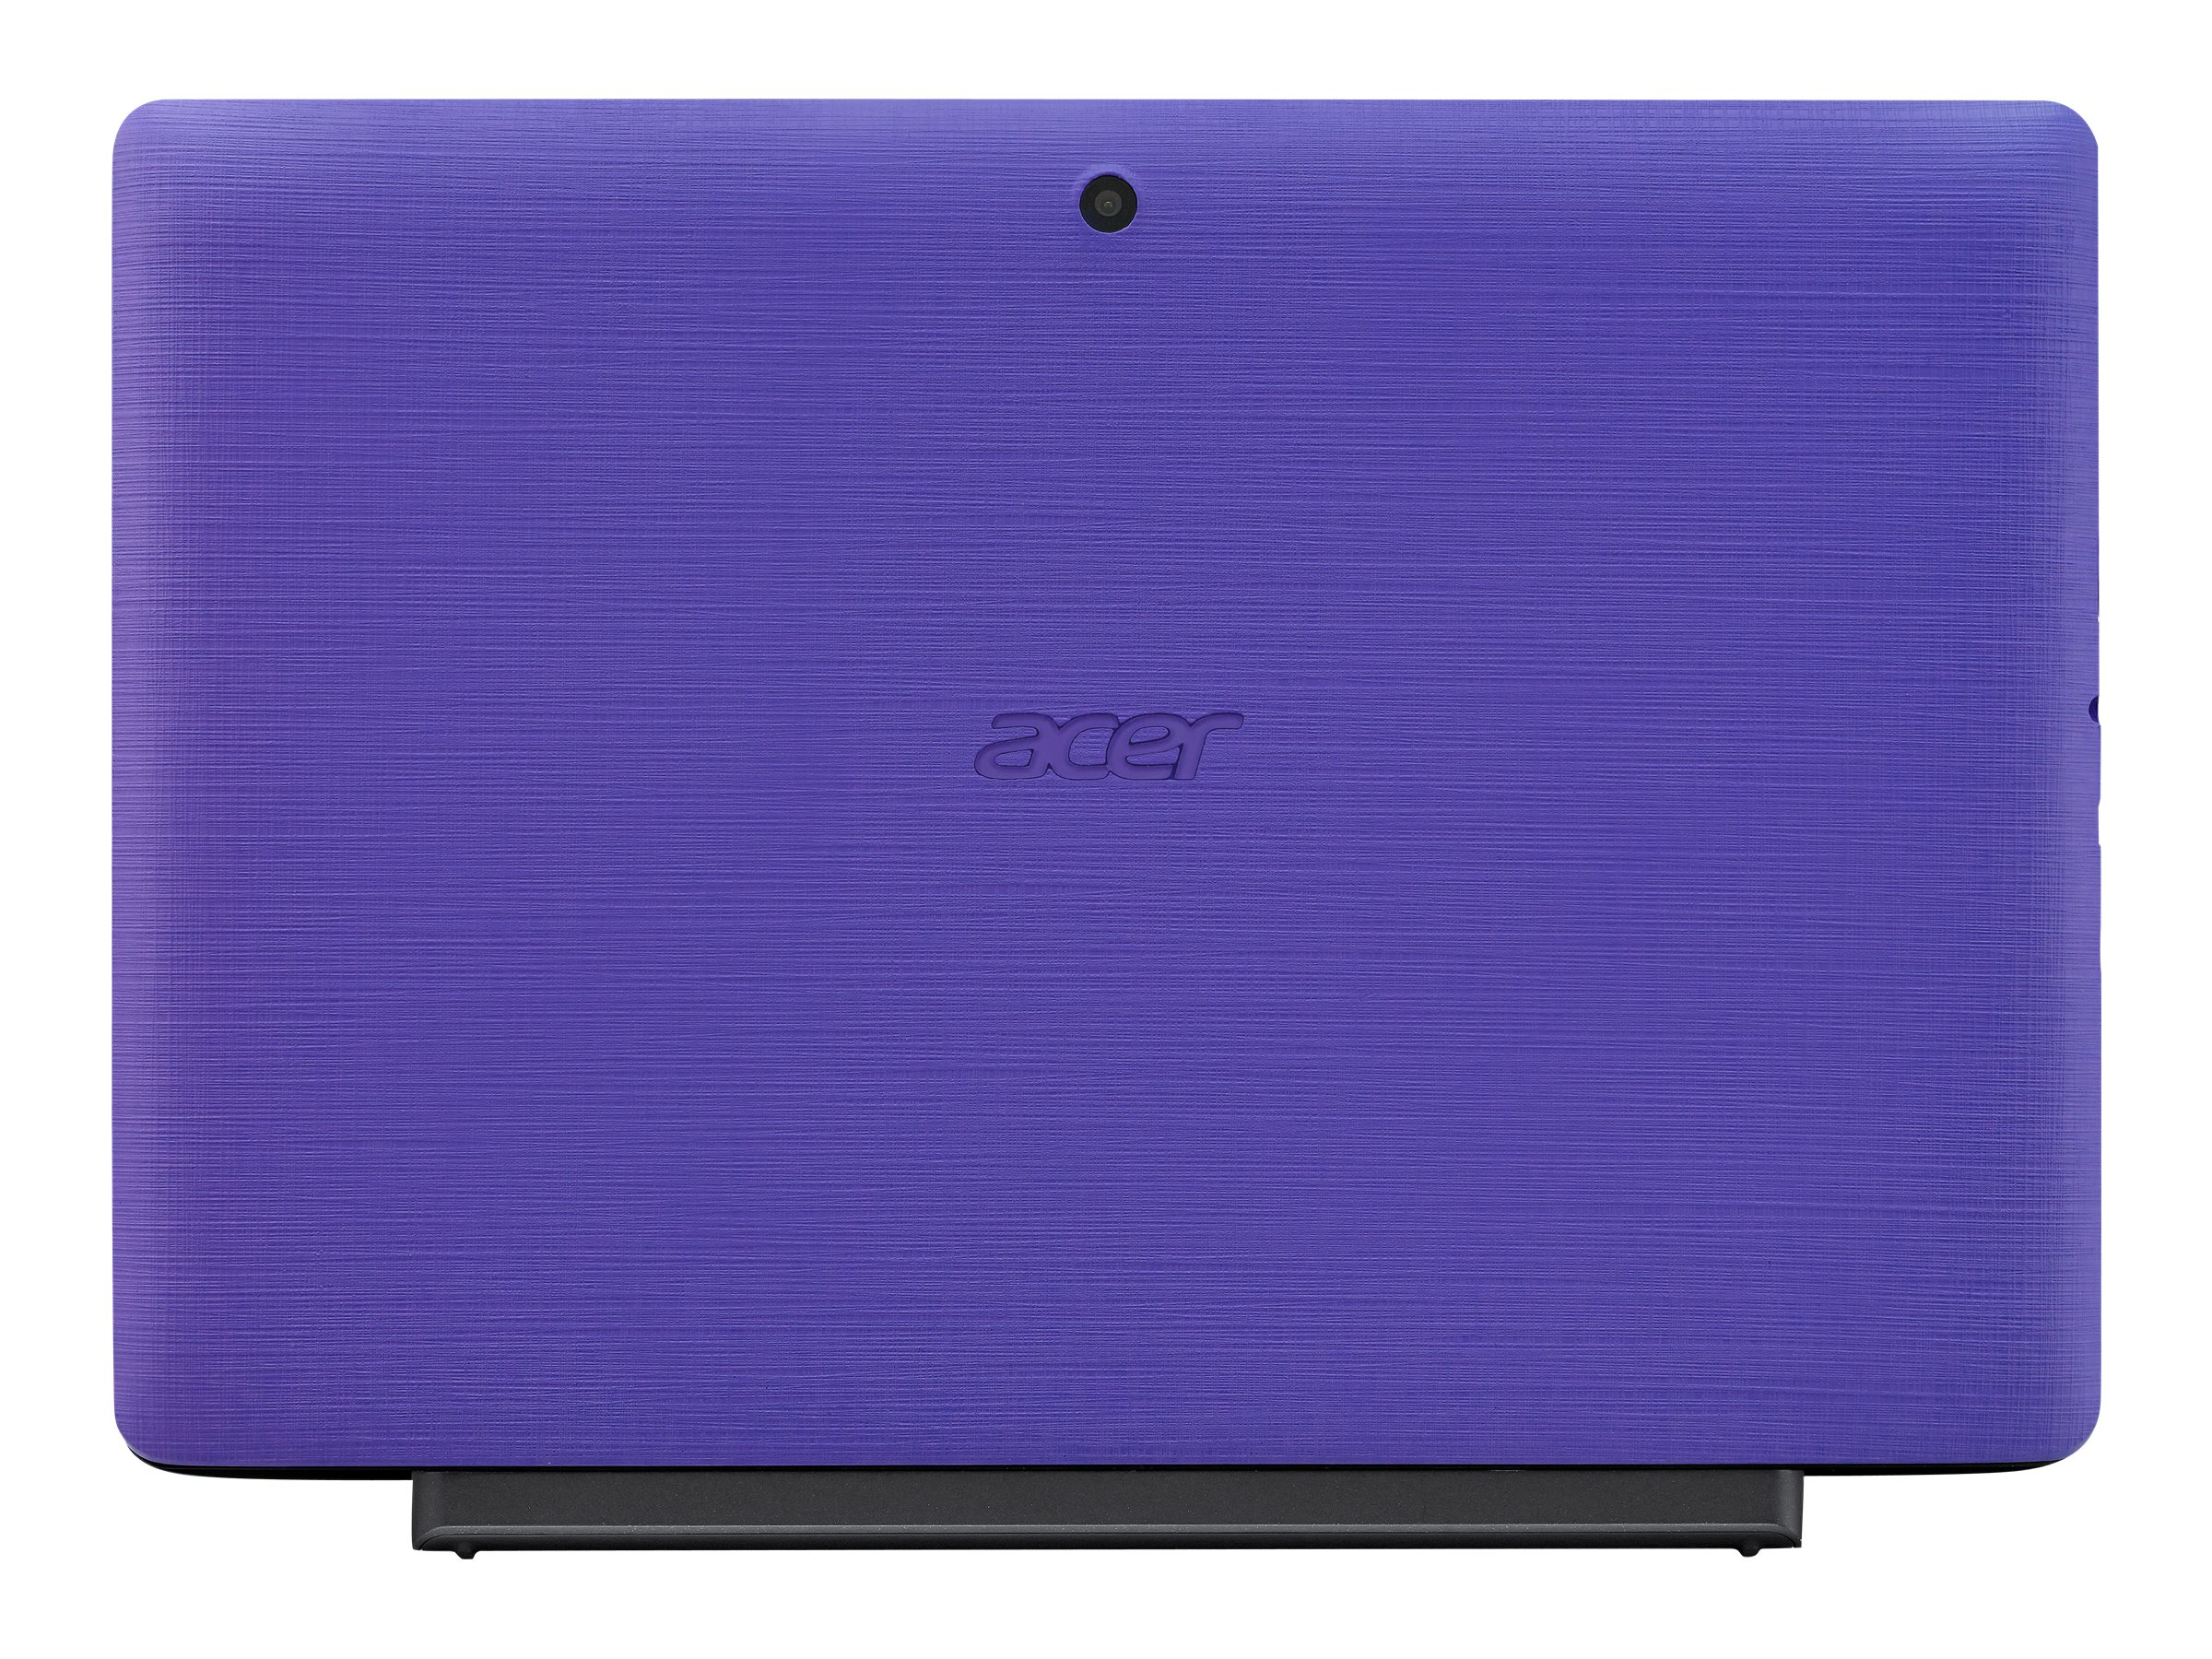 Acer Aspire Switch 10 SW3-013-15UB Atom Z3735F 1.33GHz 2GB 32GBabgn BT 2xWC 10.1 WXGA MT W10H Purple, NT.G1WAA.005